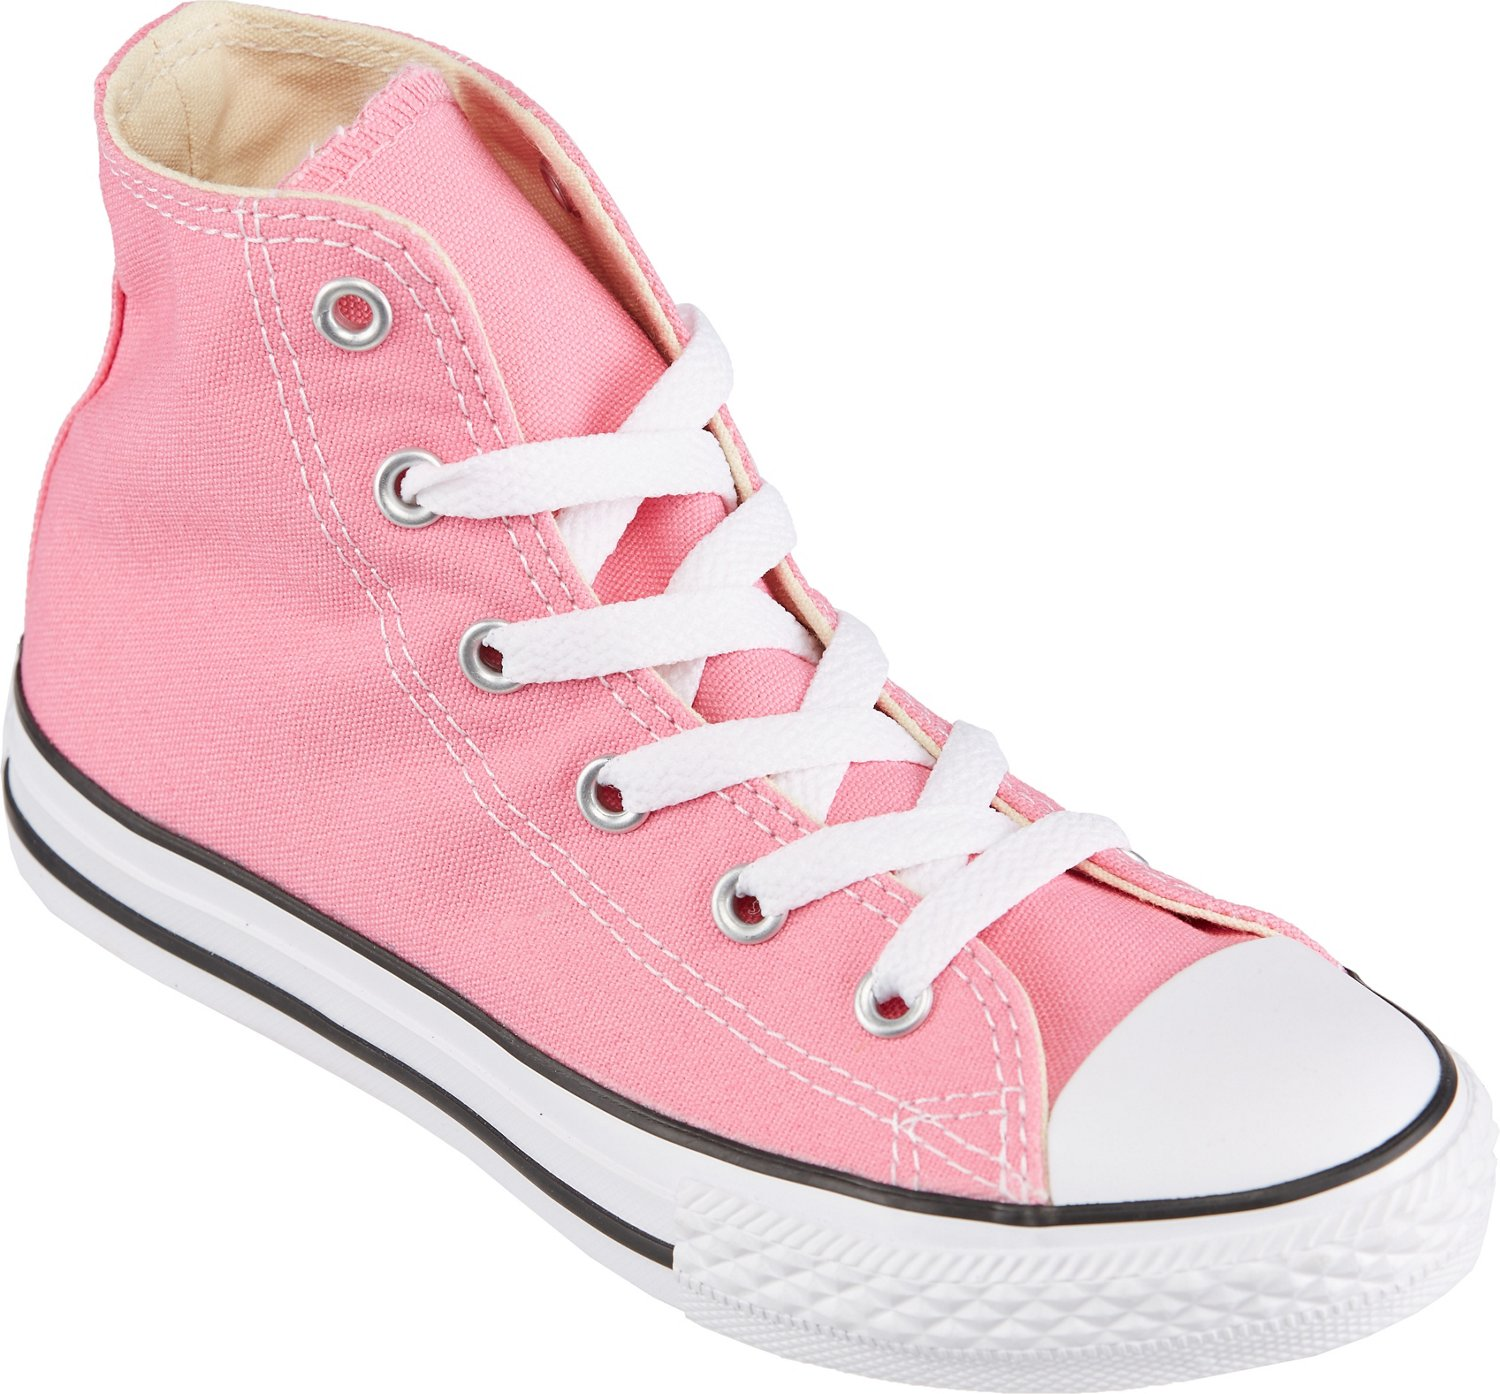 Converse Toddler Girls' Chuck Taylor All Star Shoes - view number 2